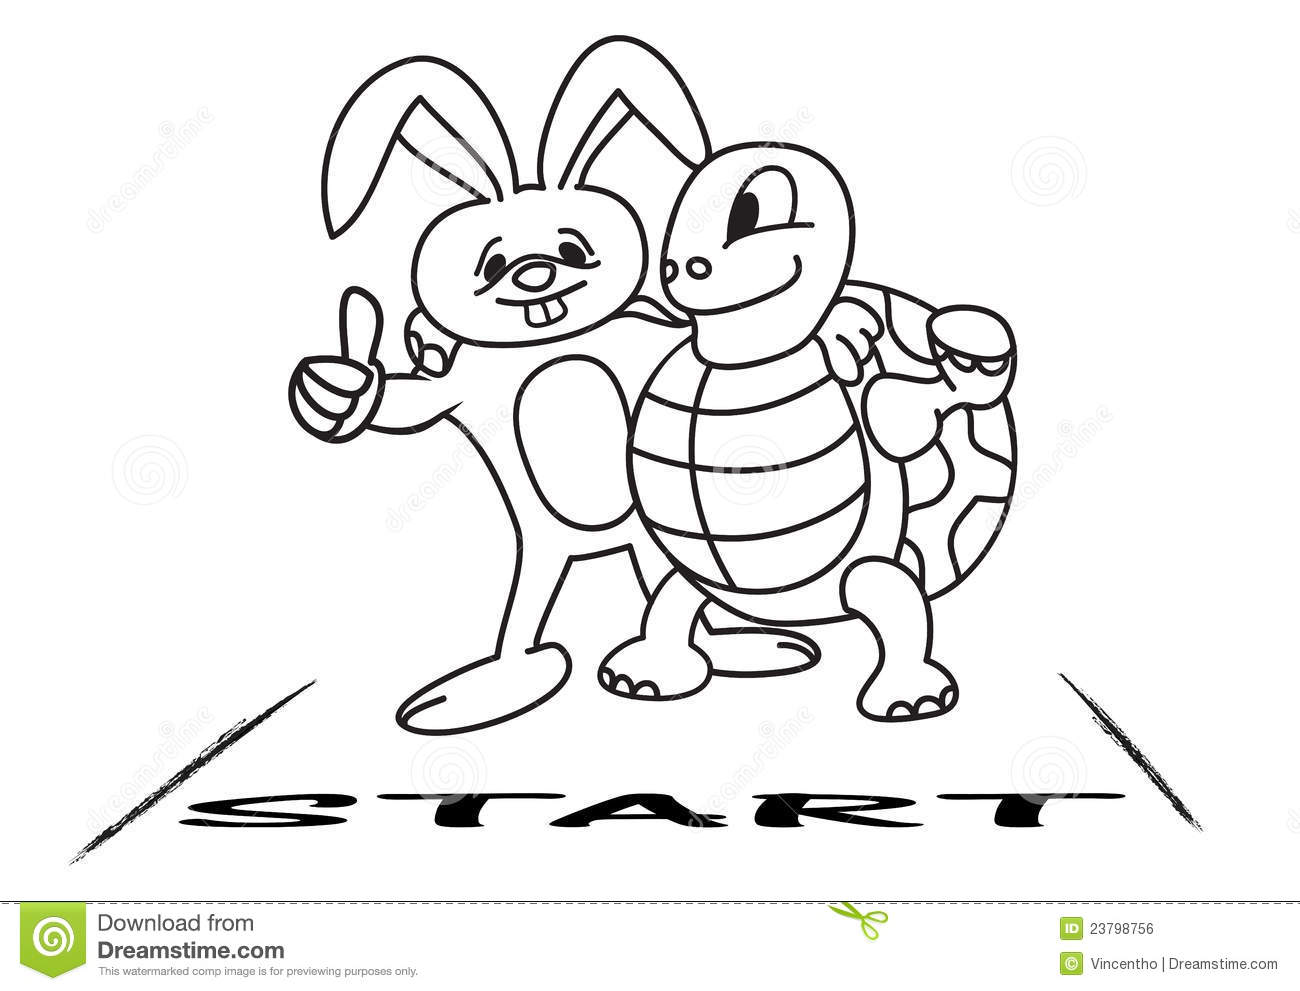 Tortoise And Hare At The Starting Line Royalty Free Stock Image